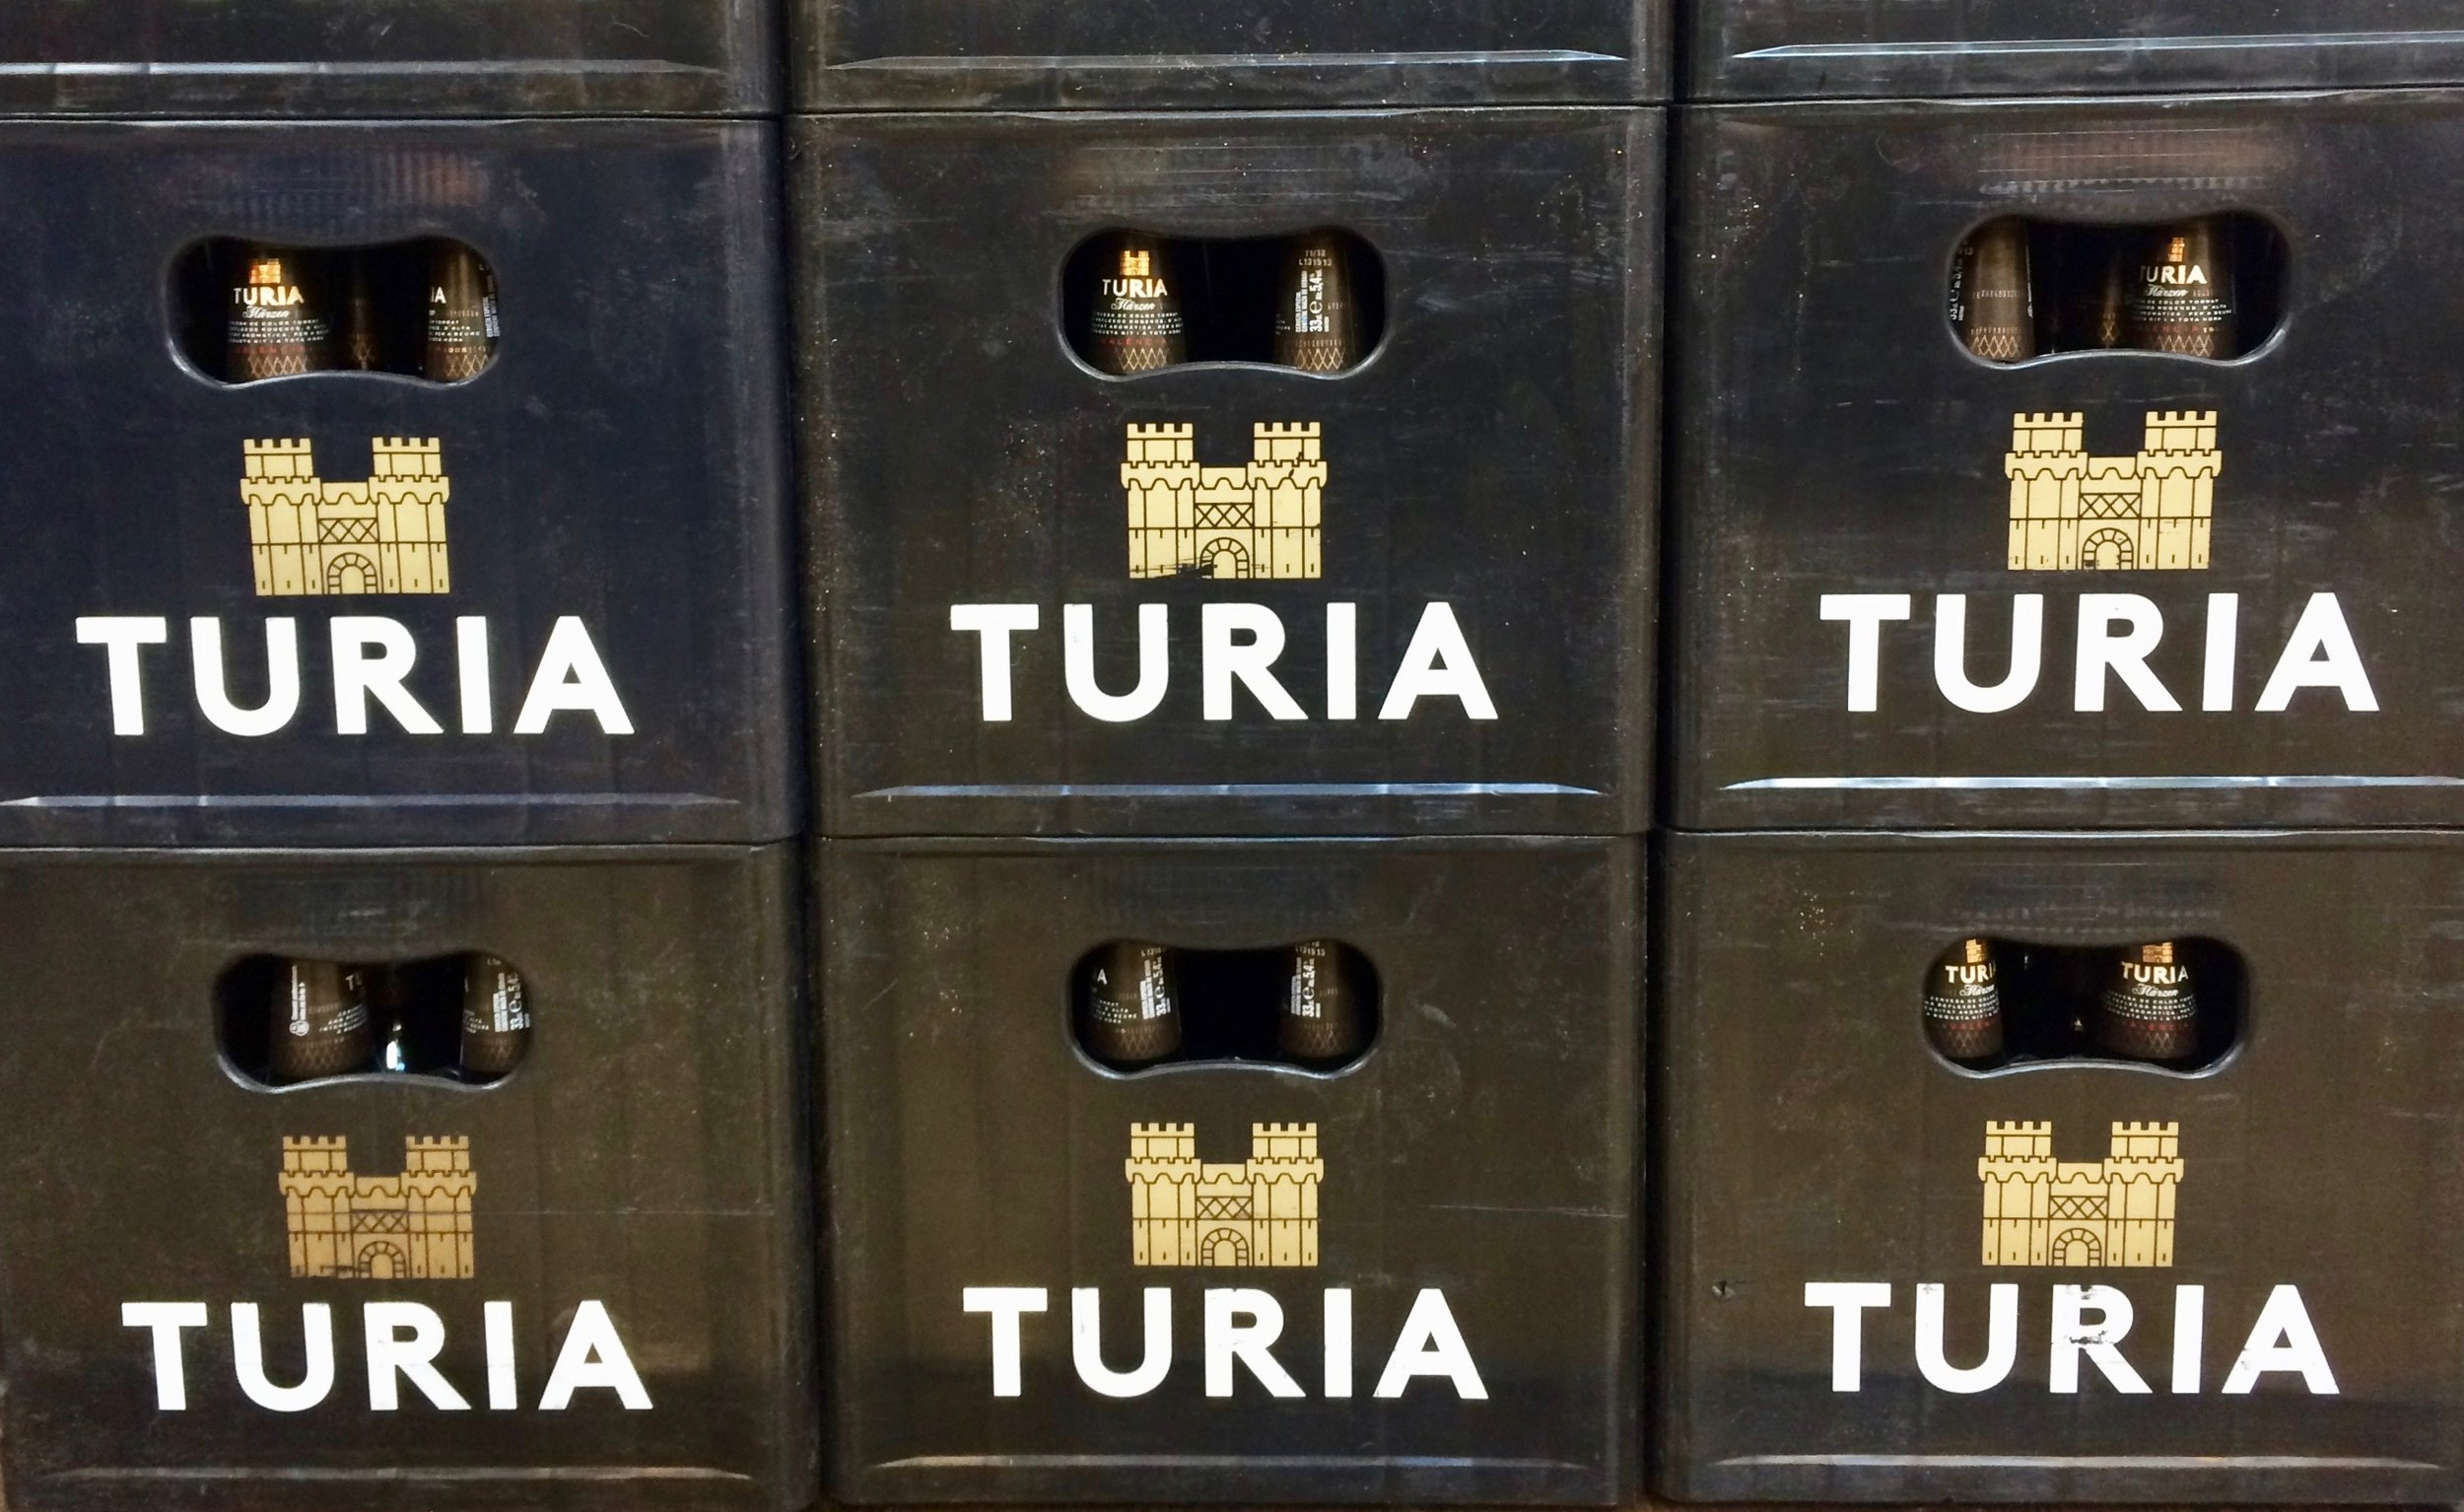 """Valencia has it's own beer """"Turia""""."""